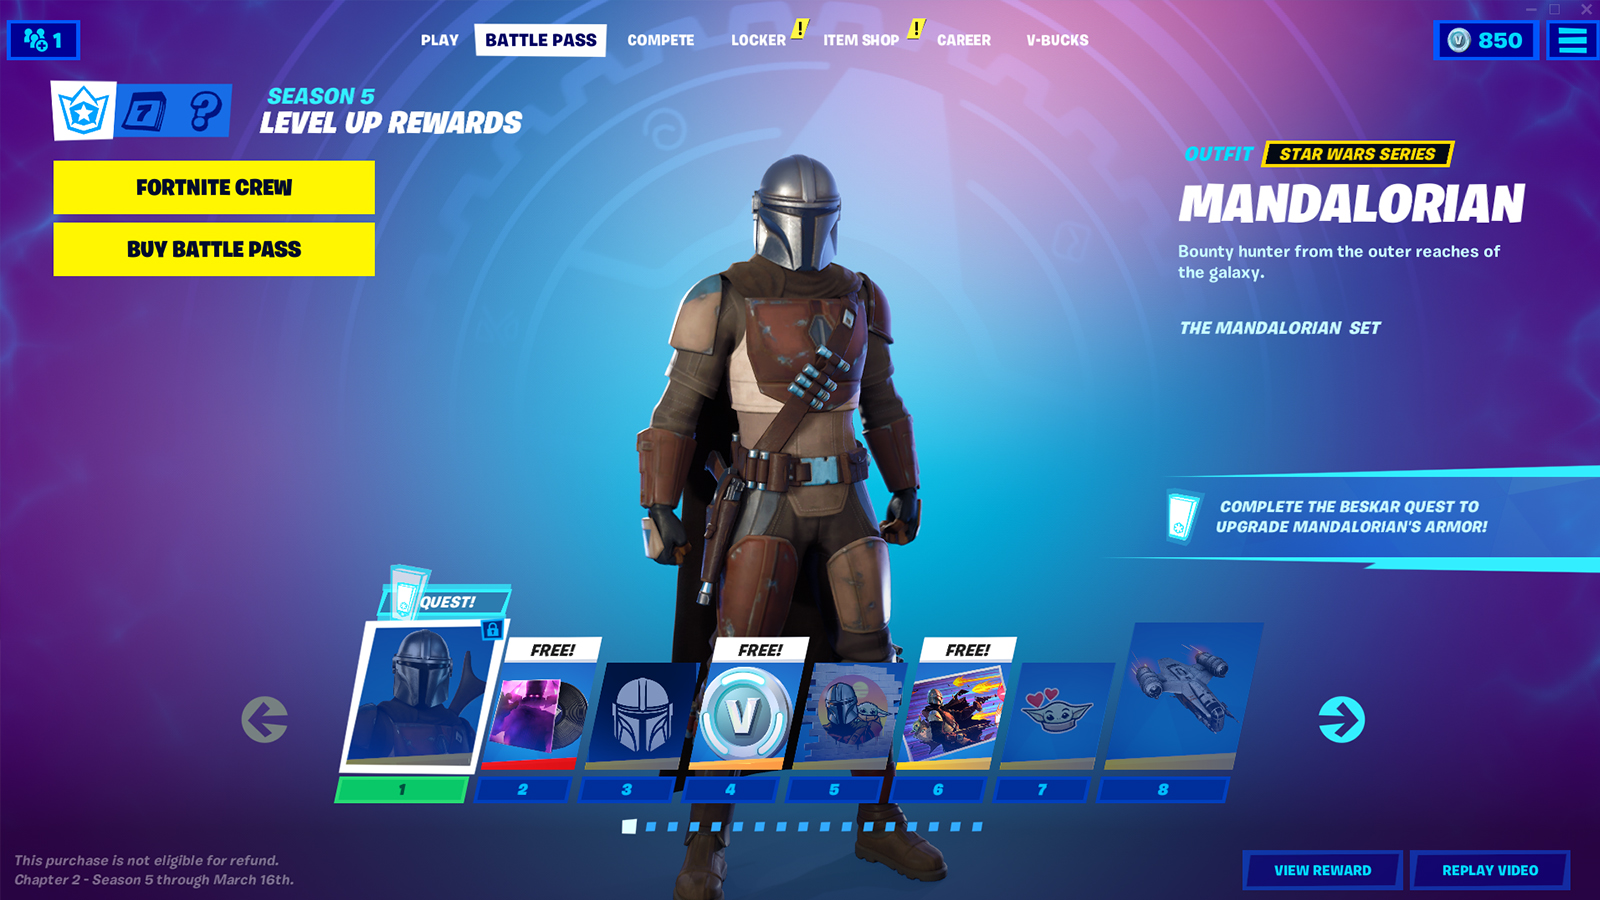 Fortnite's Battle Pass in the new Chapter 2, Season 5.